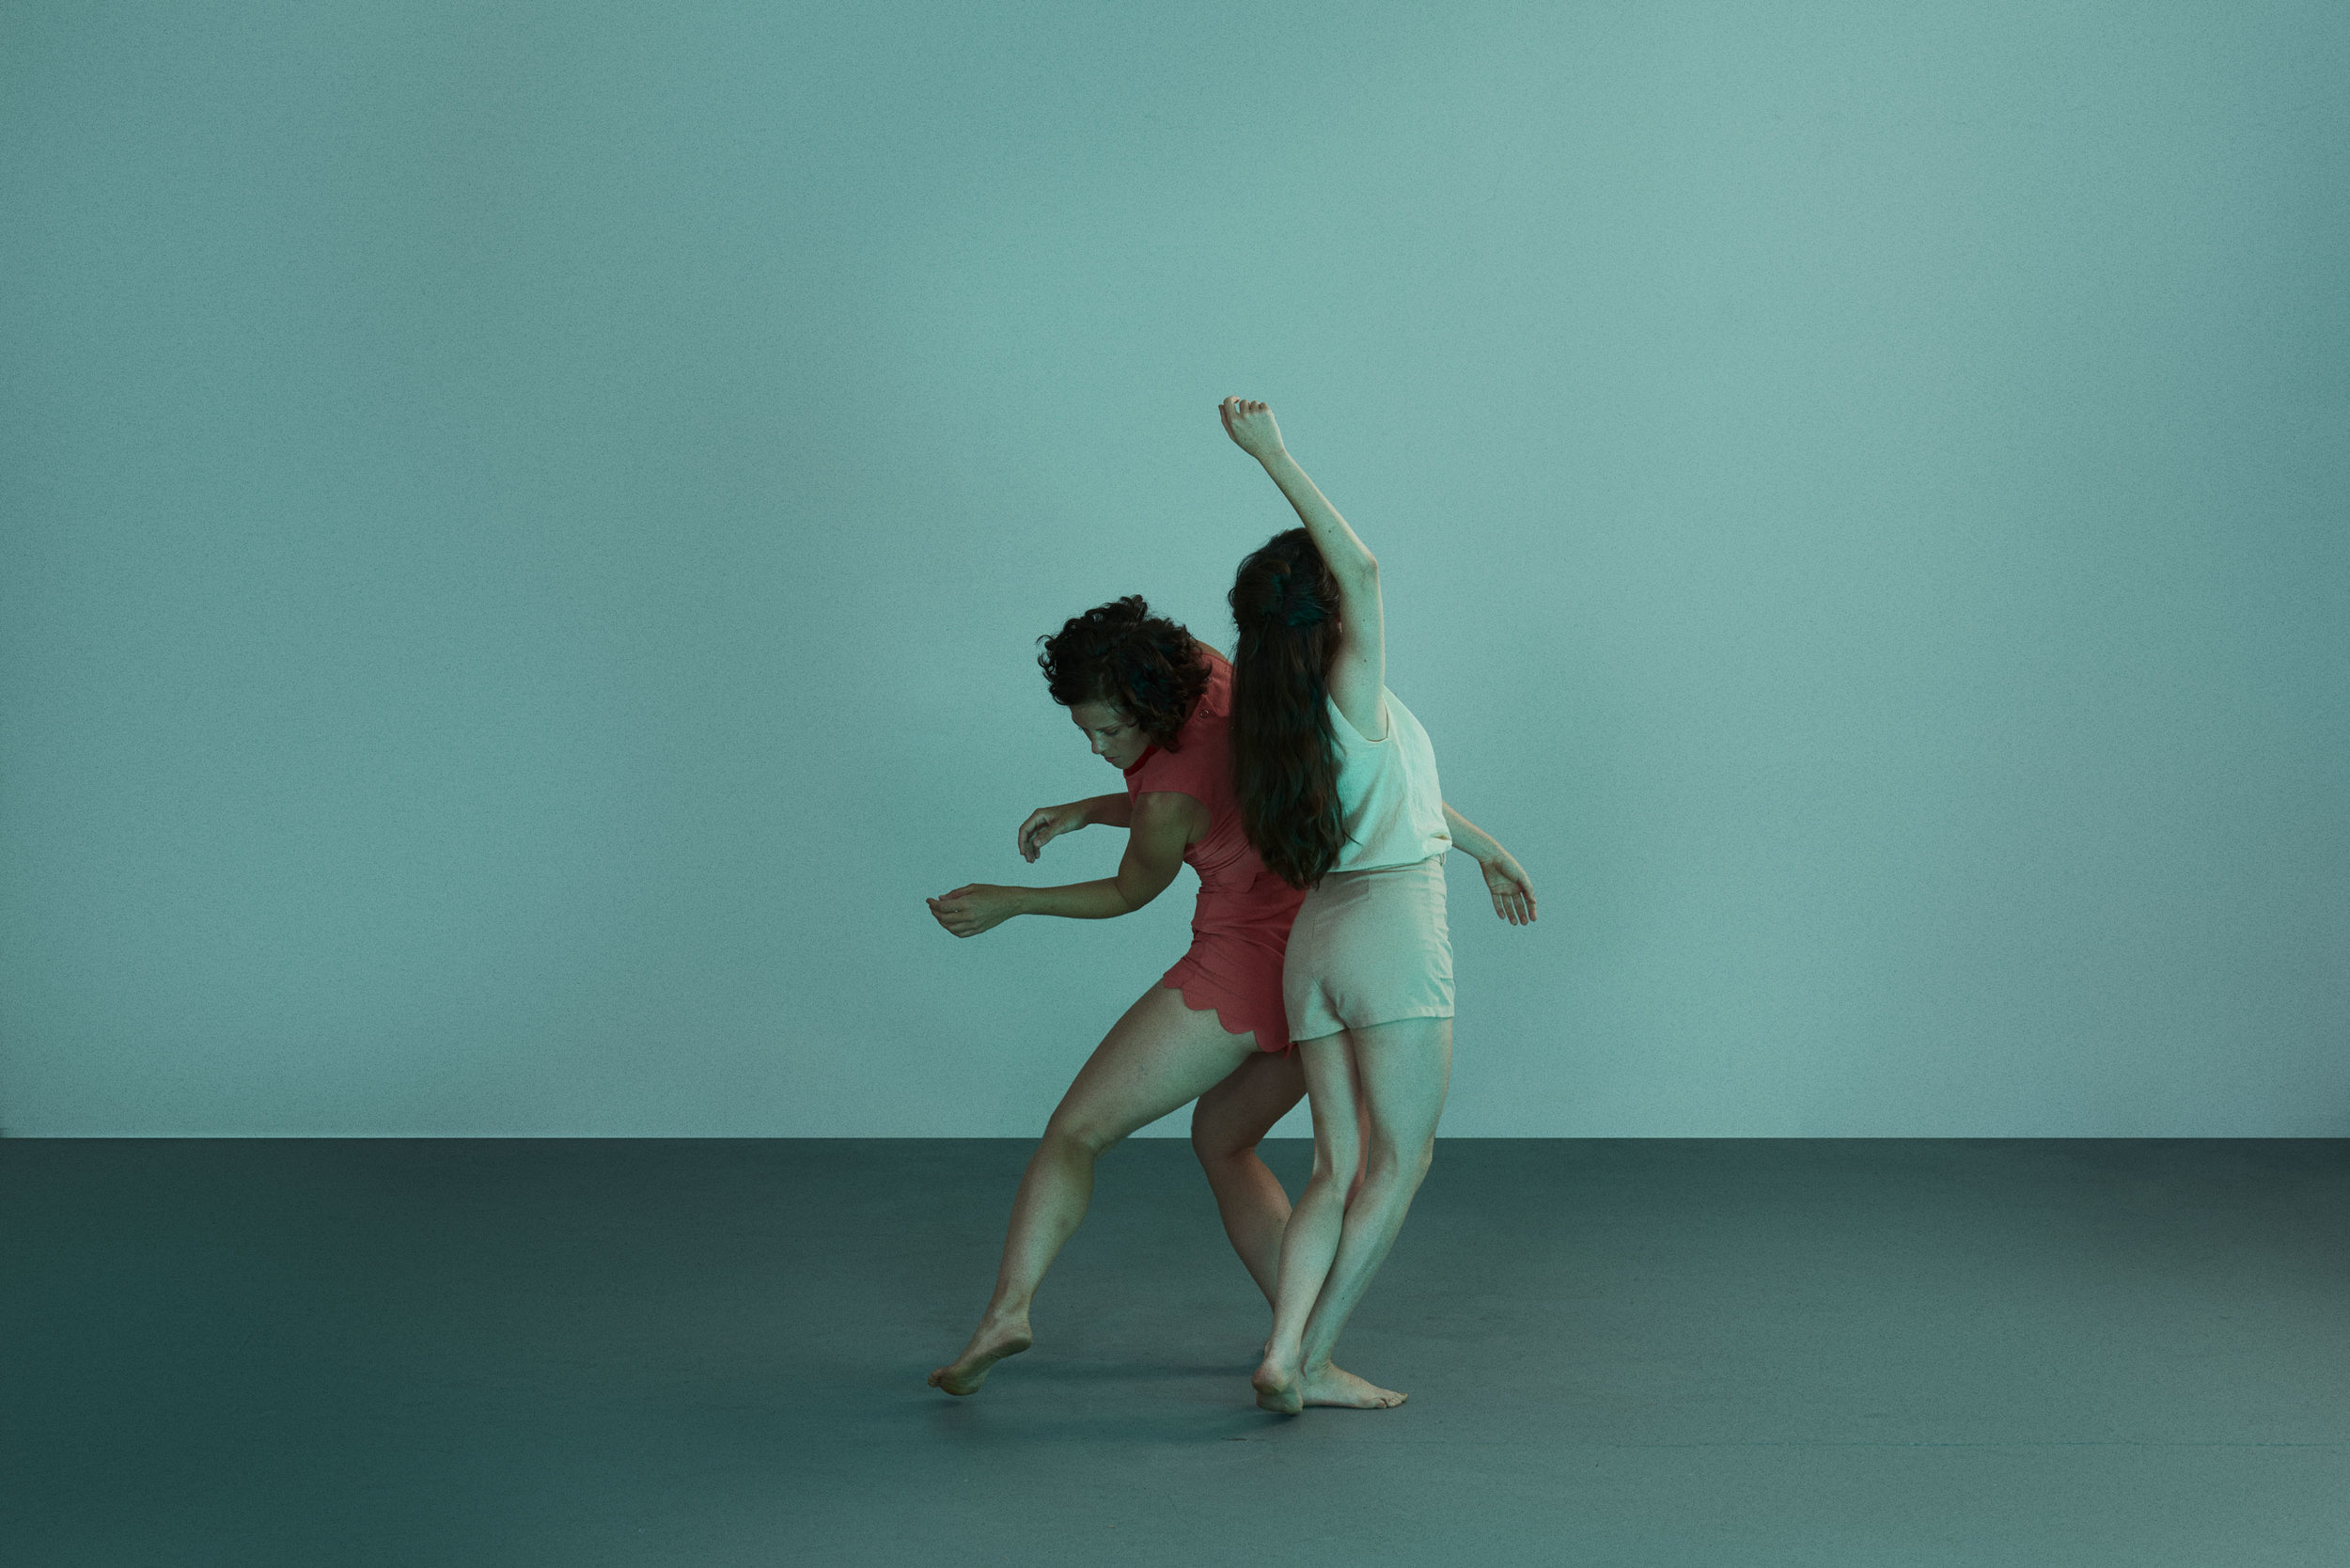 Image from personal project of photographer Craig Mulcahy titled 'The Mare'. The images mix mood, atmosphere, dance and the supernatural. #photography #neworleans #studio #teal #colour #fineart #dance #movement #entity #malicious